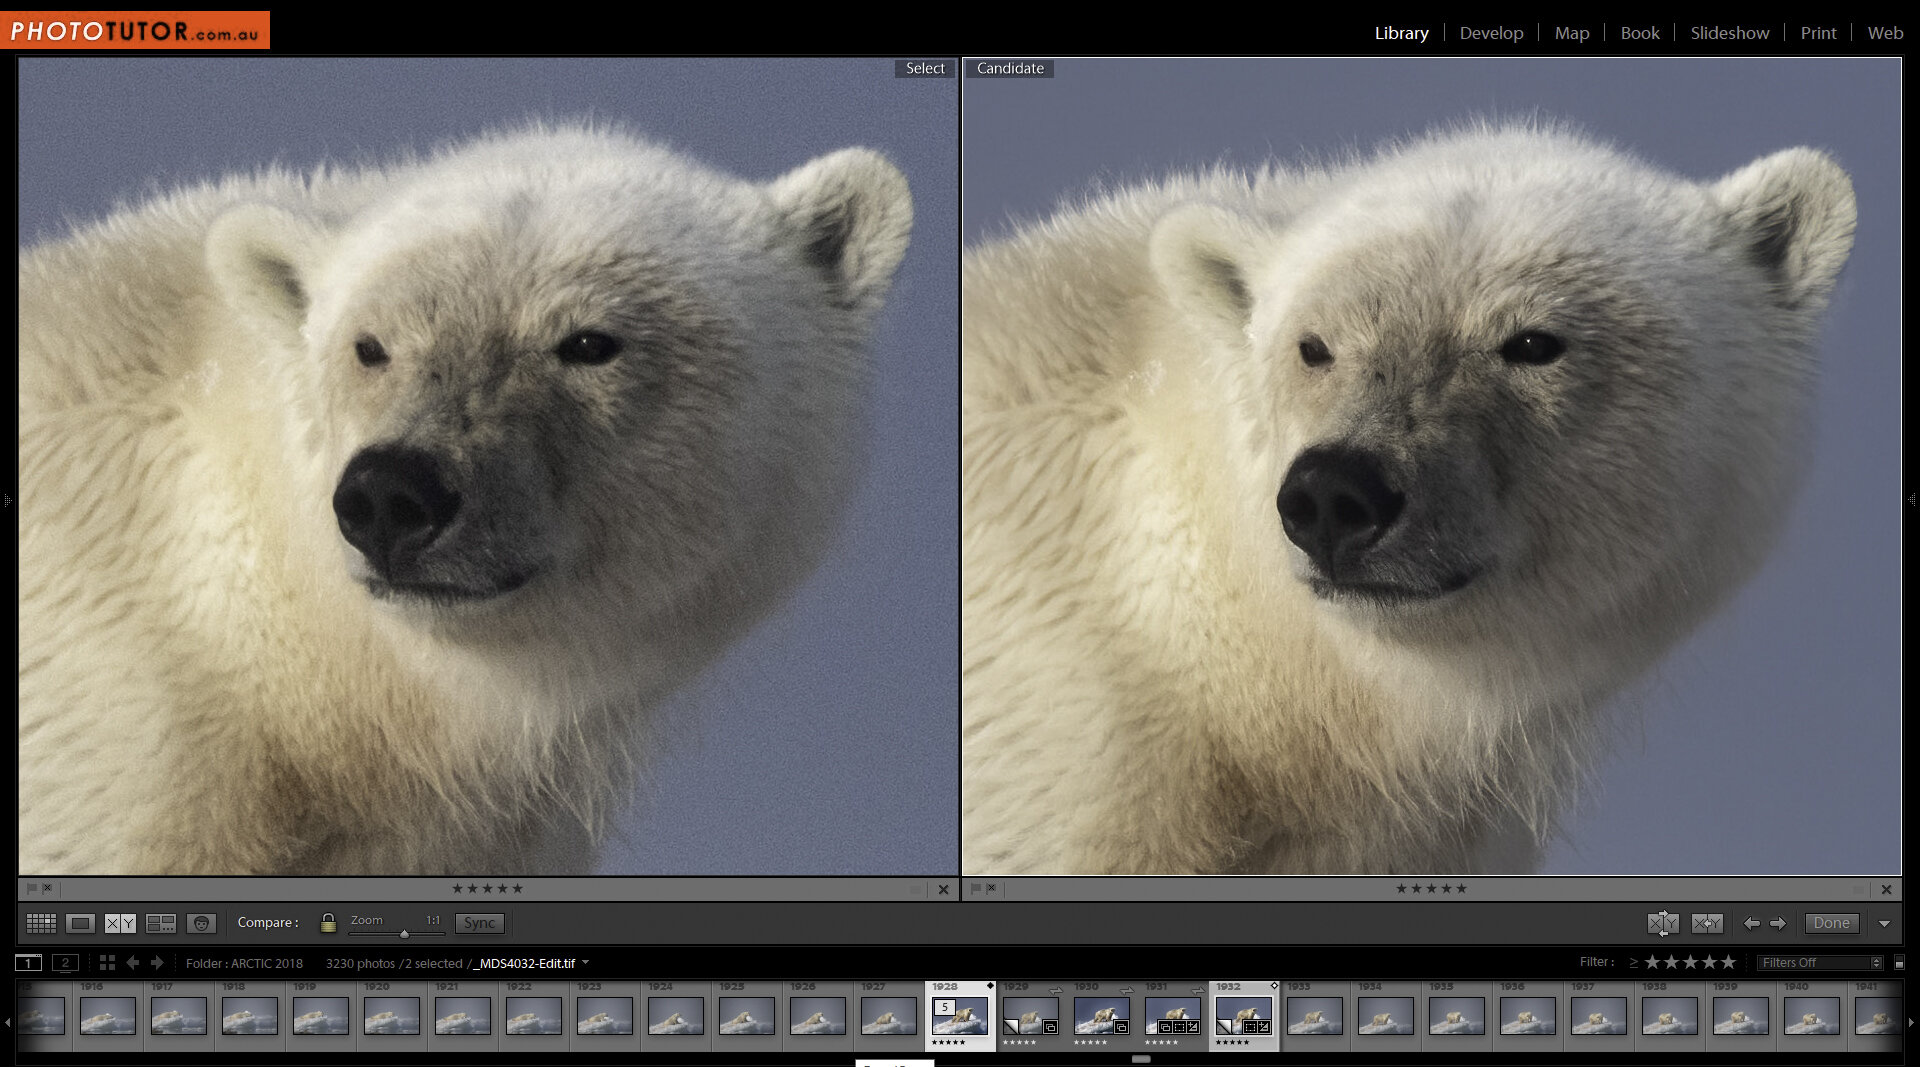 Above: Detail at 100% of an image of a Polar Bear taken with a Tamron 150-600mm zoom lens at 600mm, with ISO set at 250 and f8. At left the RAW file with Lightroom sharpening and minor noise reduction. At right the image with Topaz Denoise AI applied. The Topaz version has removed the luminance noise from the sky (the image was taken through light mist) and brought out the very fine details of the fur and around the eyes.